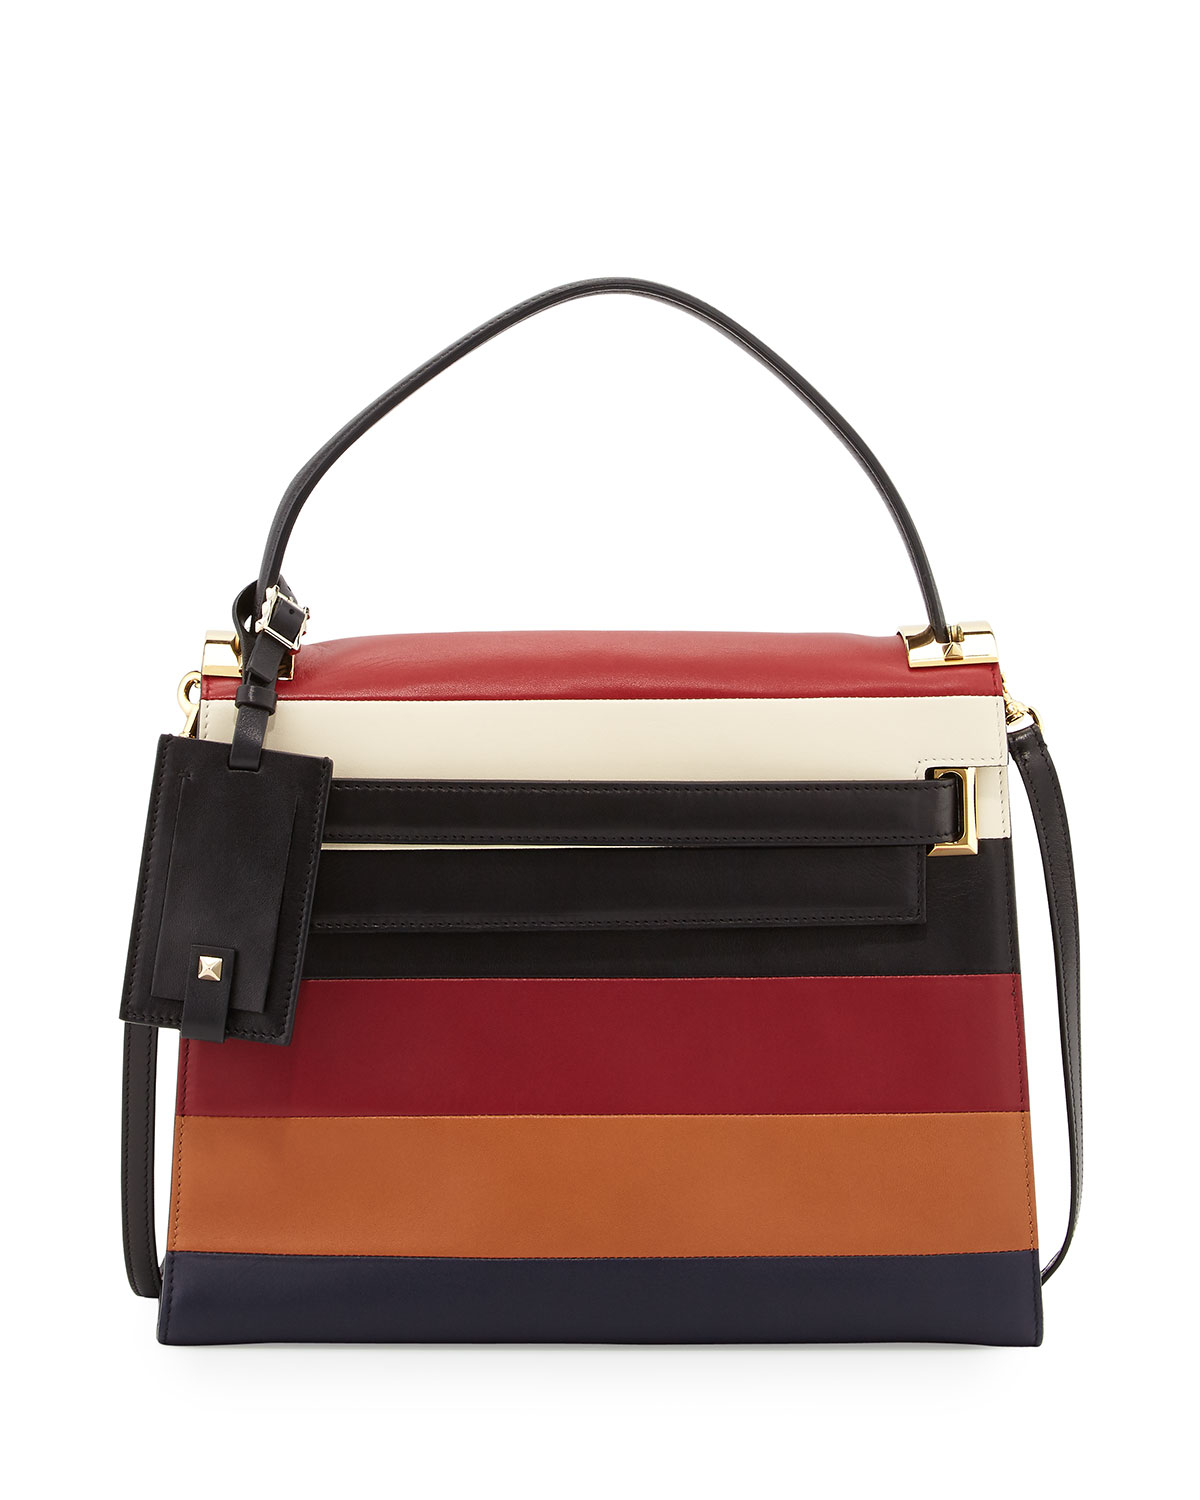 104af68228c Gallery. Previously sold at: Neiman Marcus · Women's Valentino Rockstud Bags